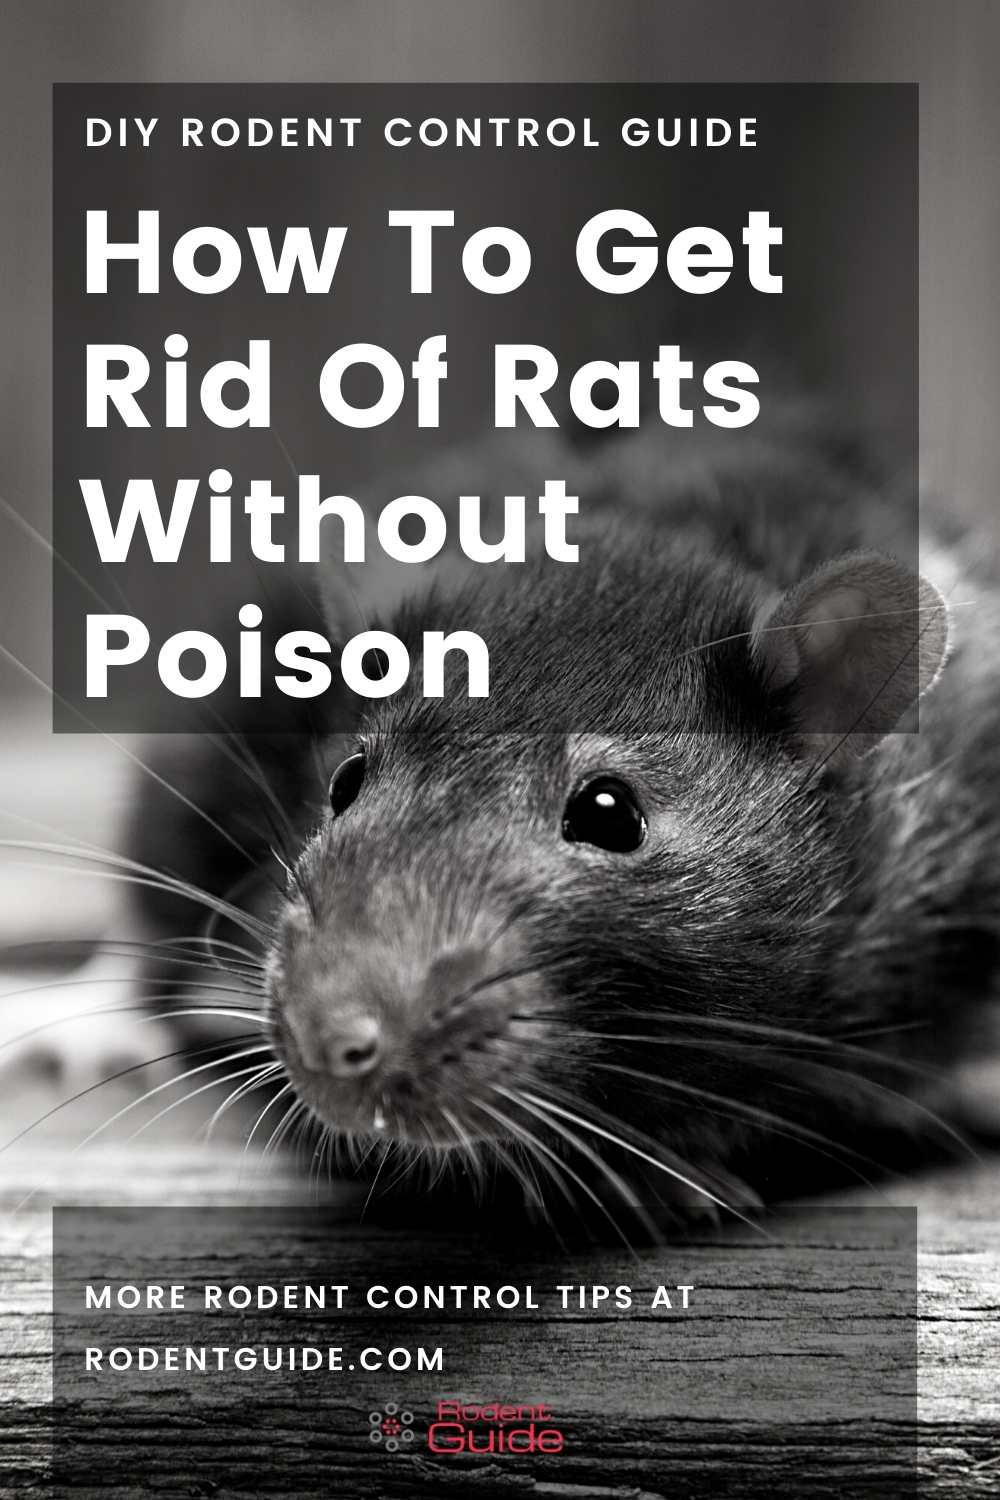 How To Get Rid Of Rats Without Poison (1)